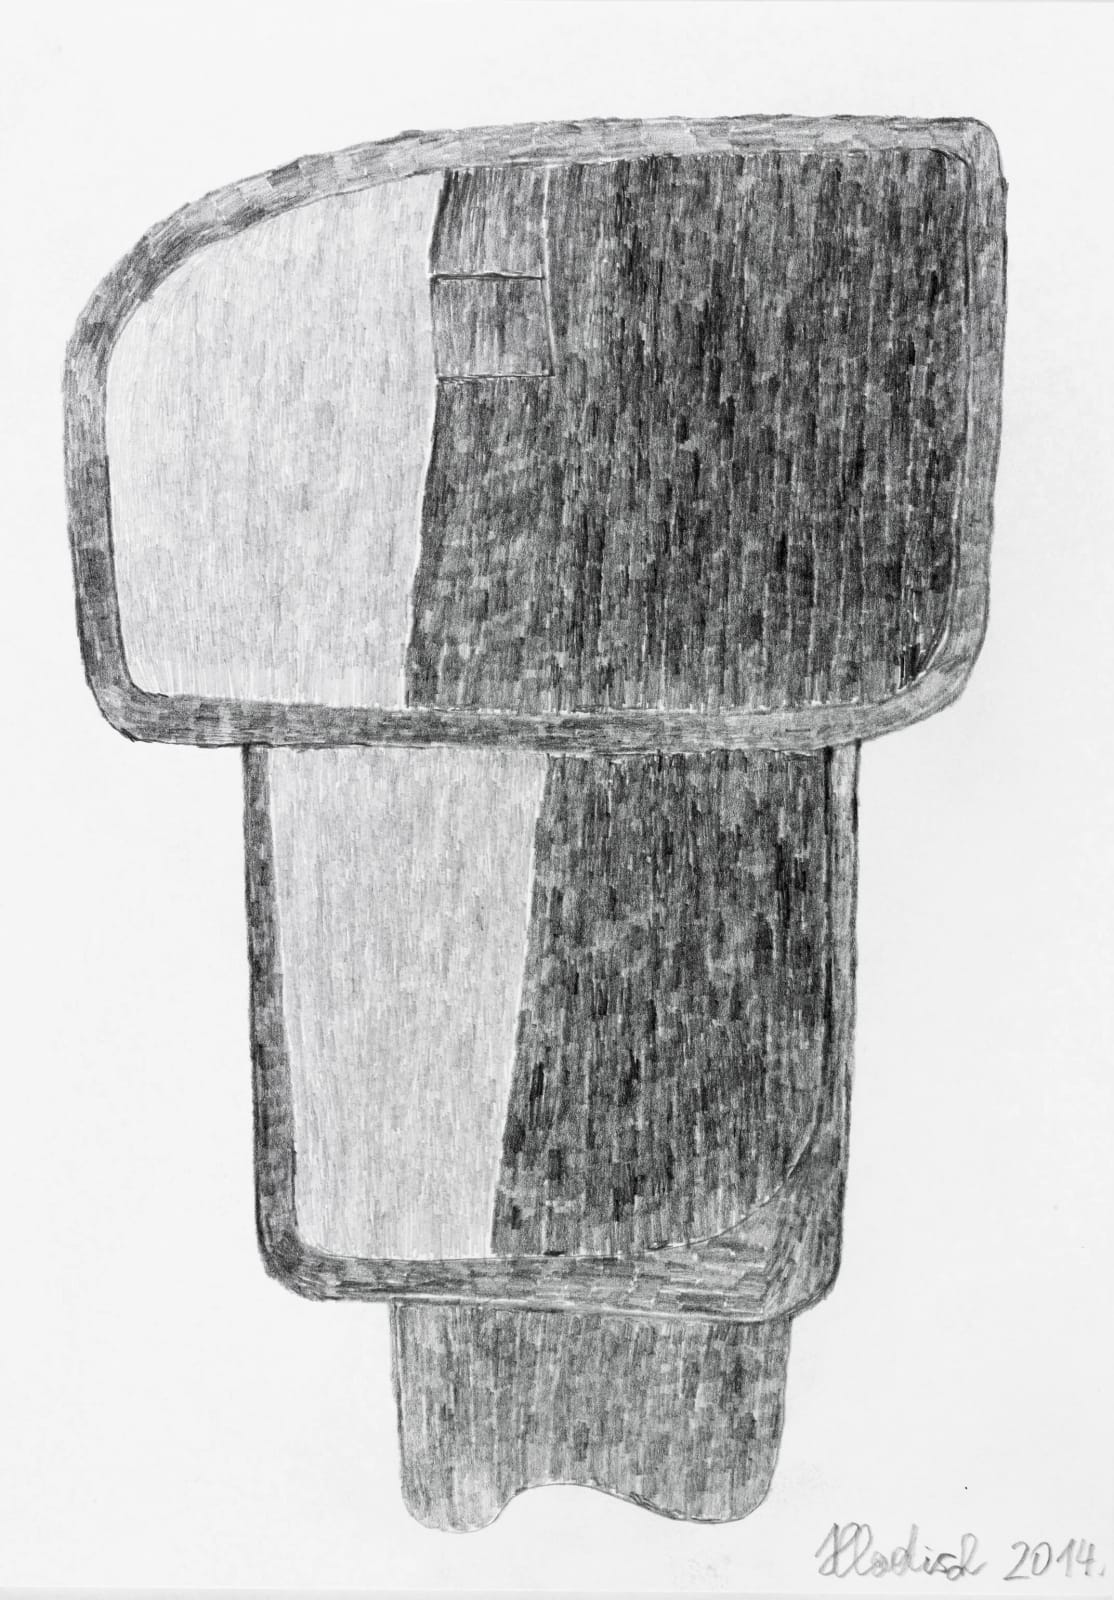 TOILET, 2014 Graphite on paper 11.7 x 8.3 in. (29.7 x 21 cm) HH 8 $2,650